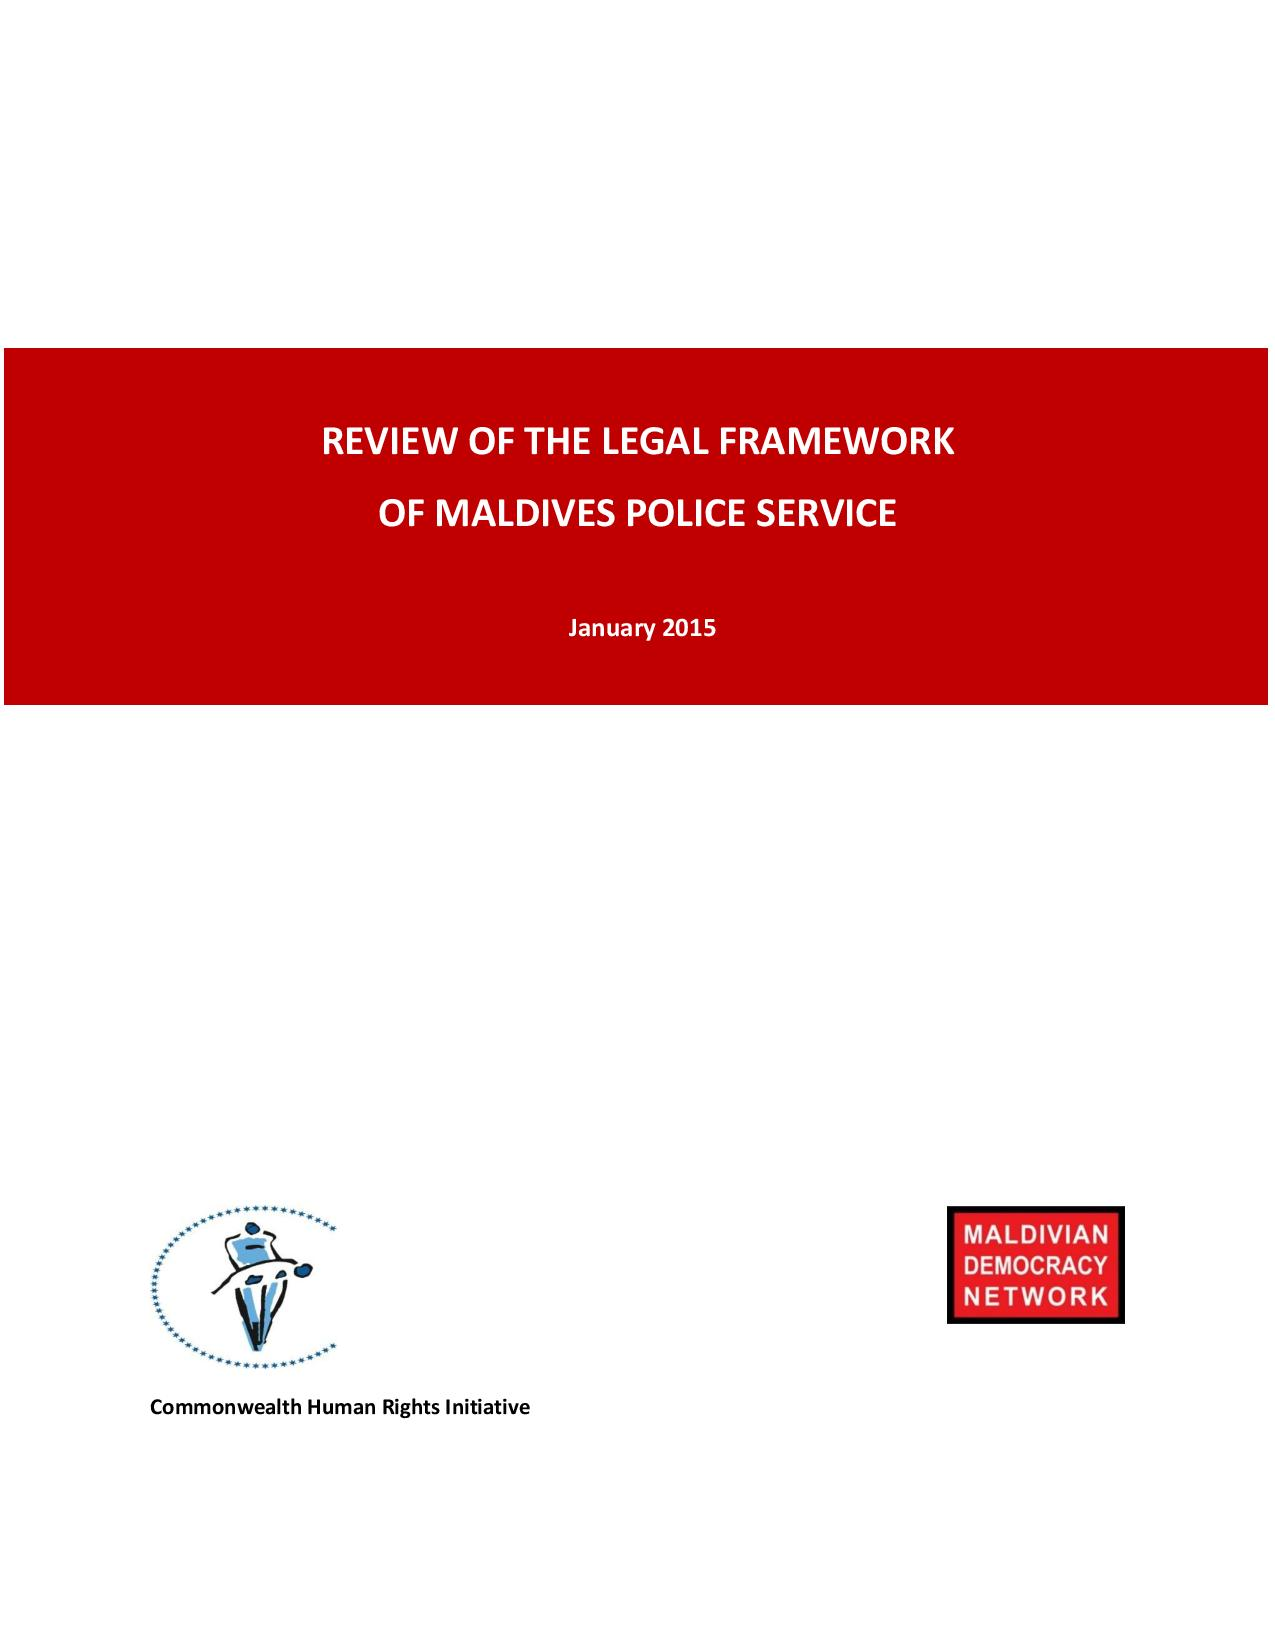 review-of-the-legal-framework-of-maldives-police-service-page-001